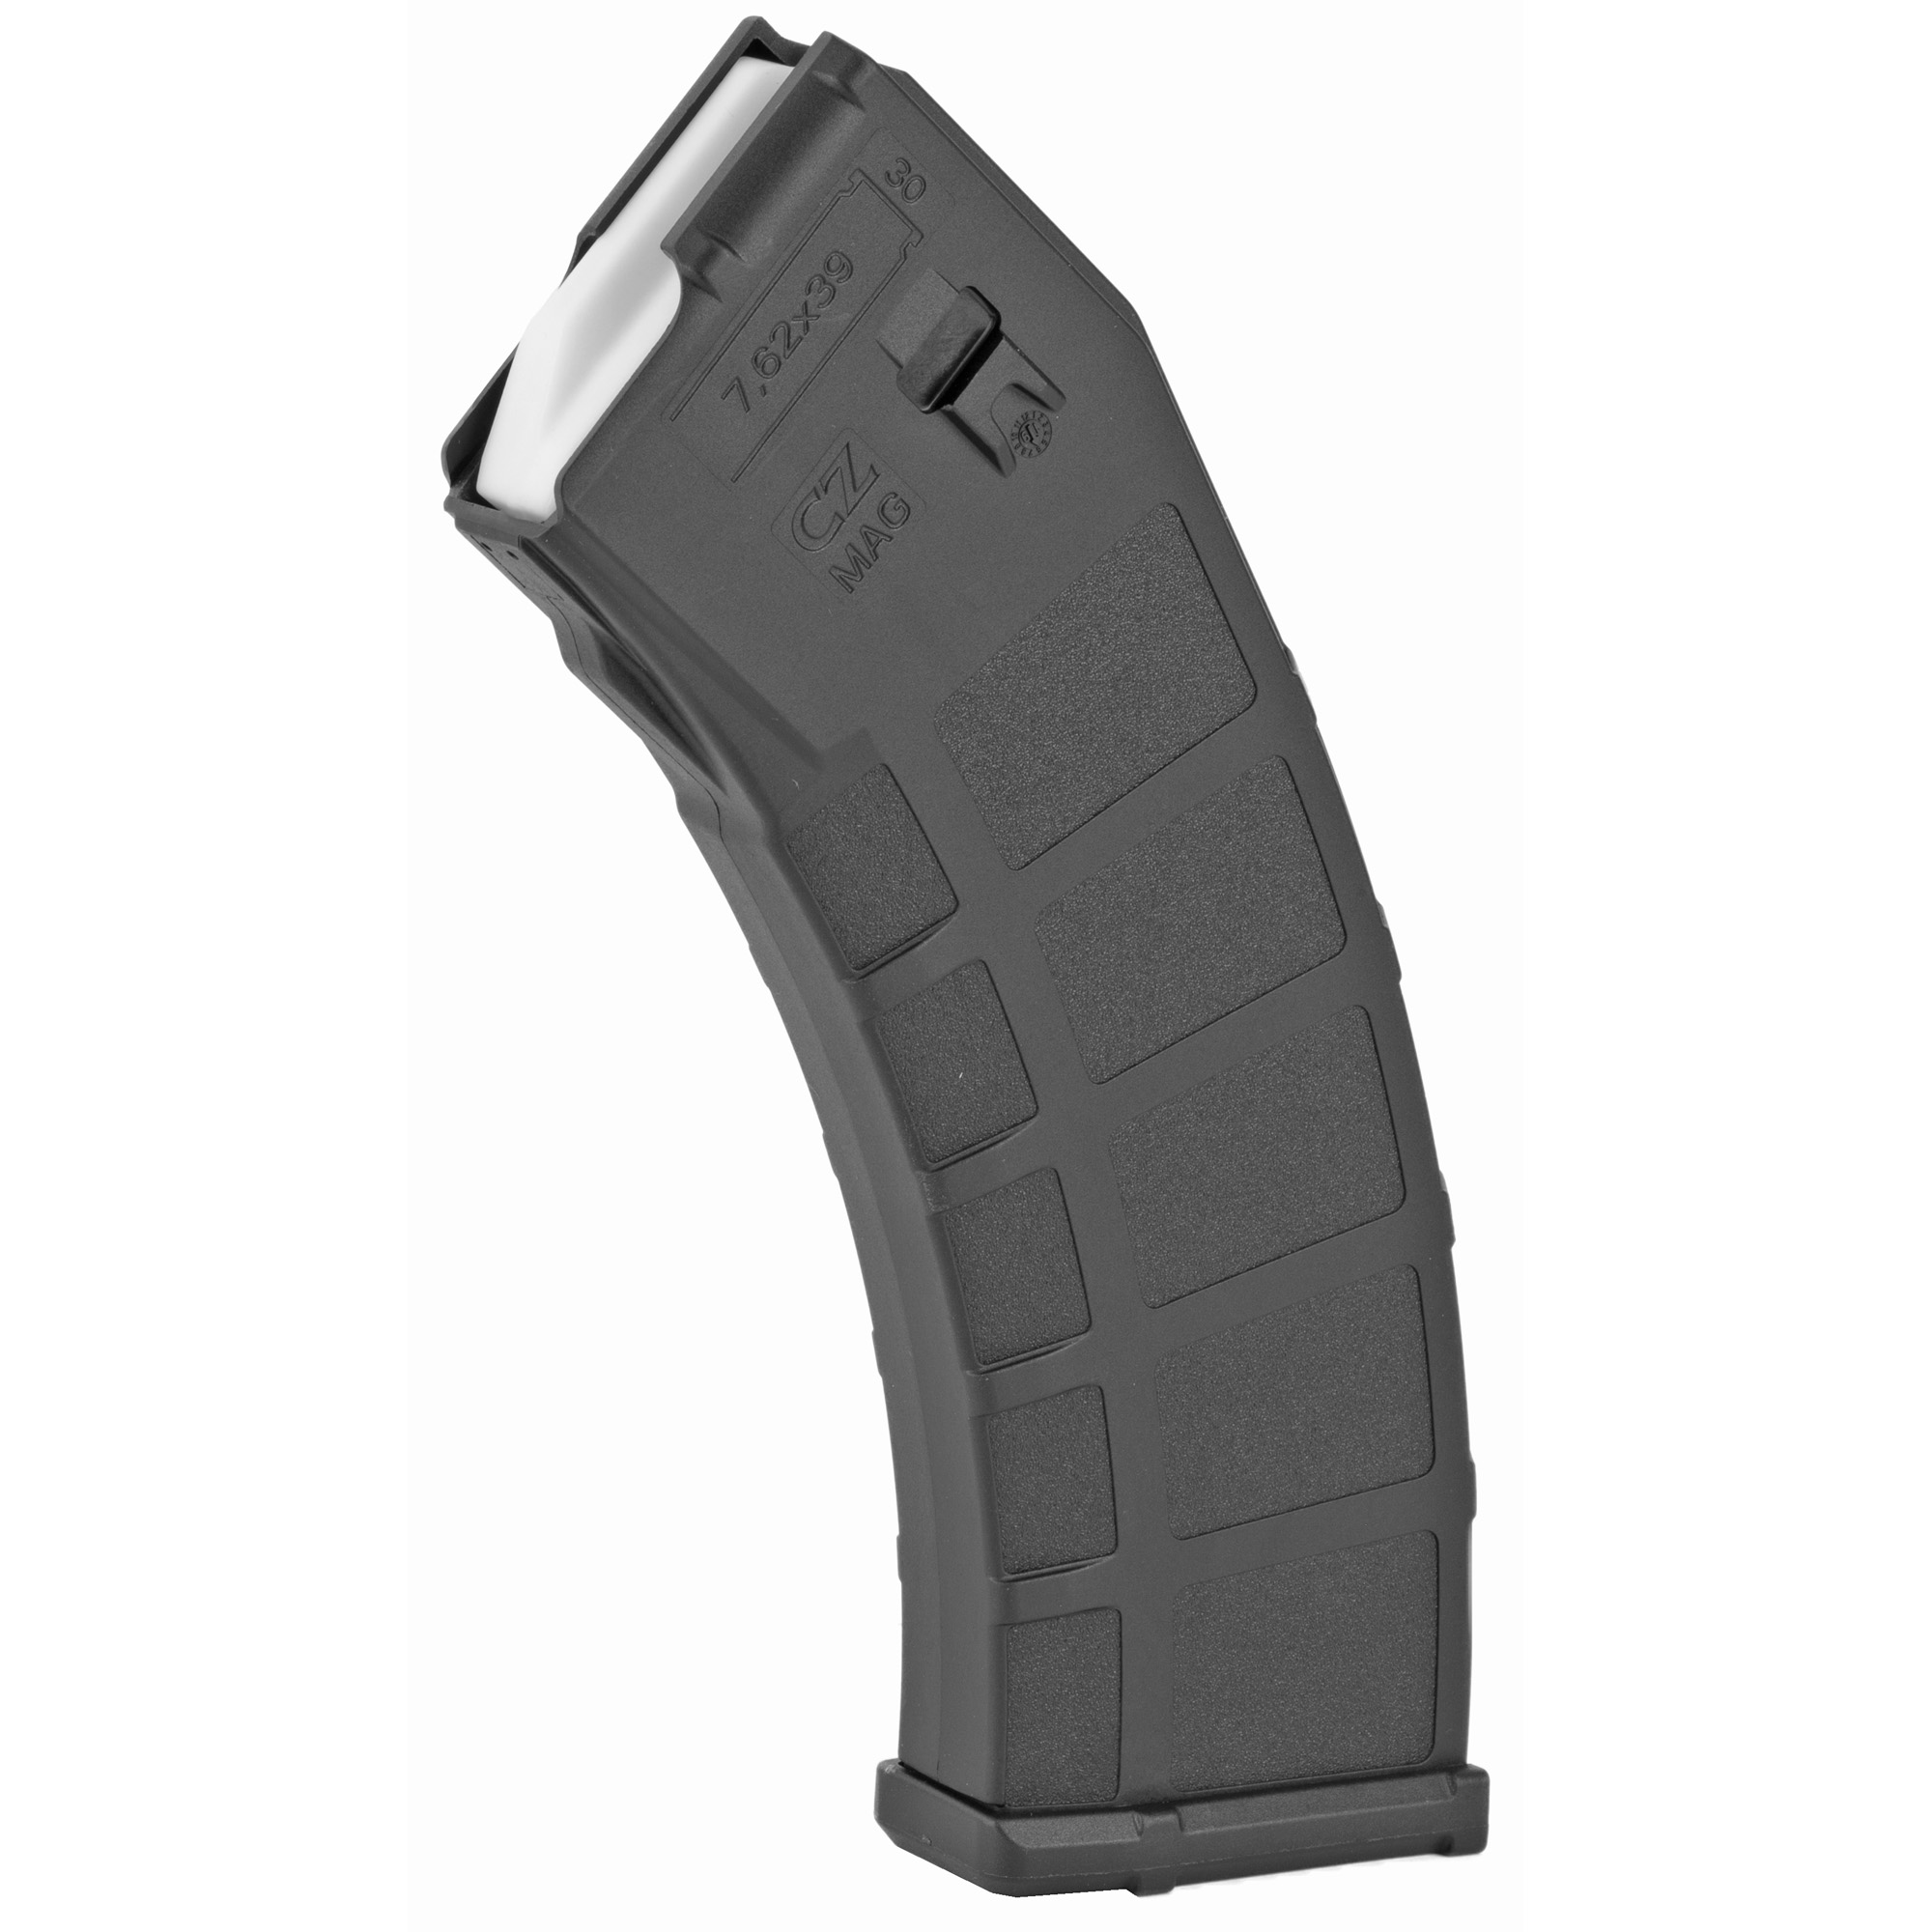 10/30 CZ Bren 2 Ms 7.62x39 Magazine - Black